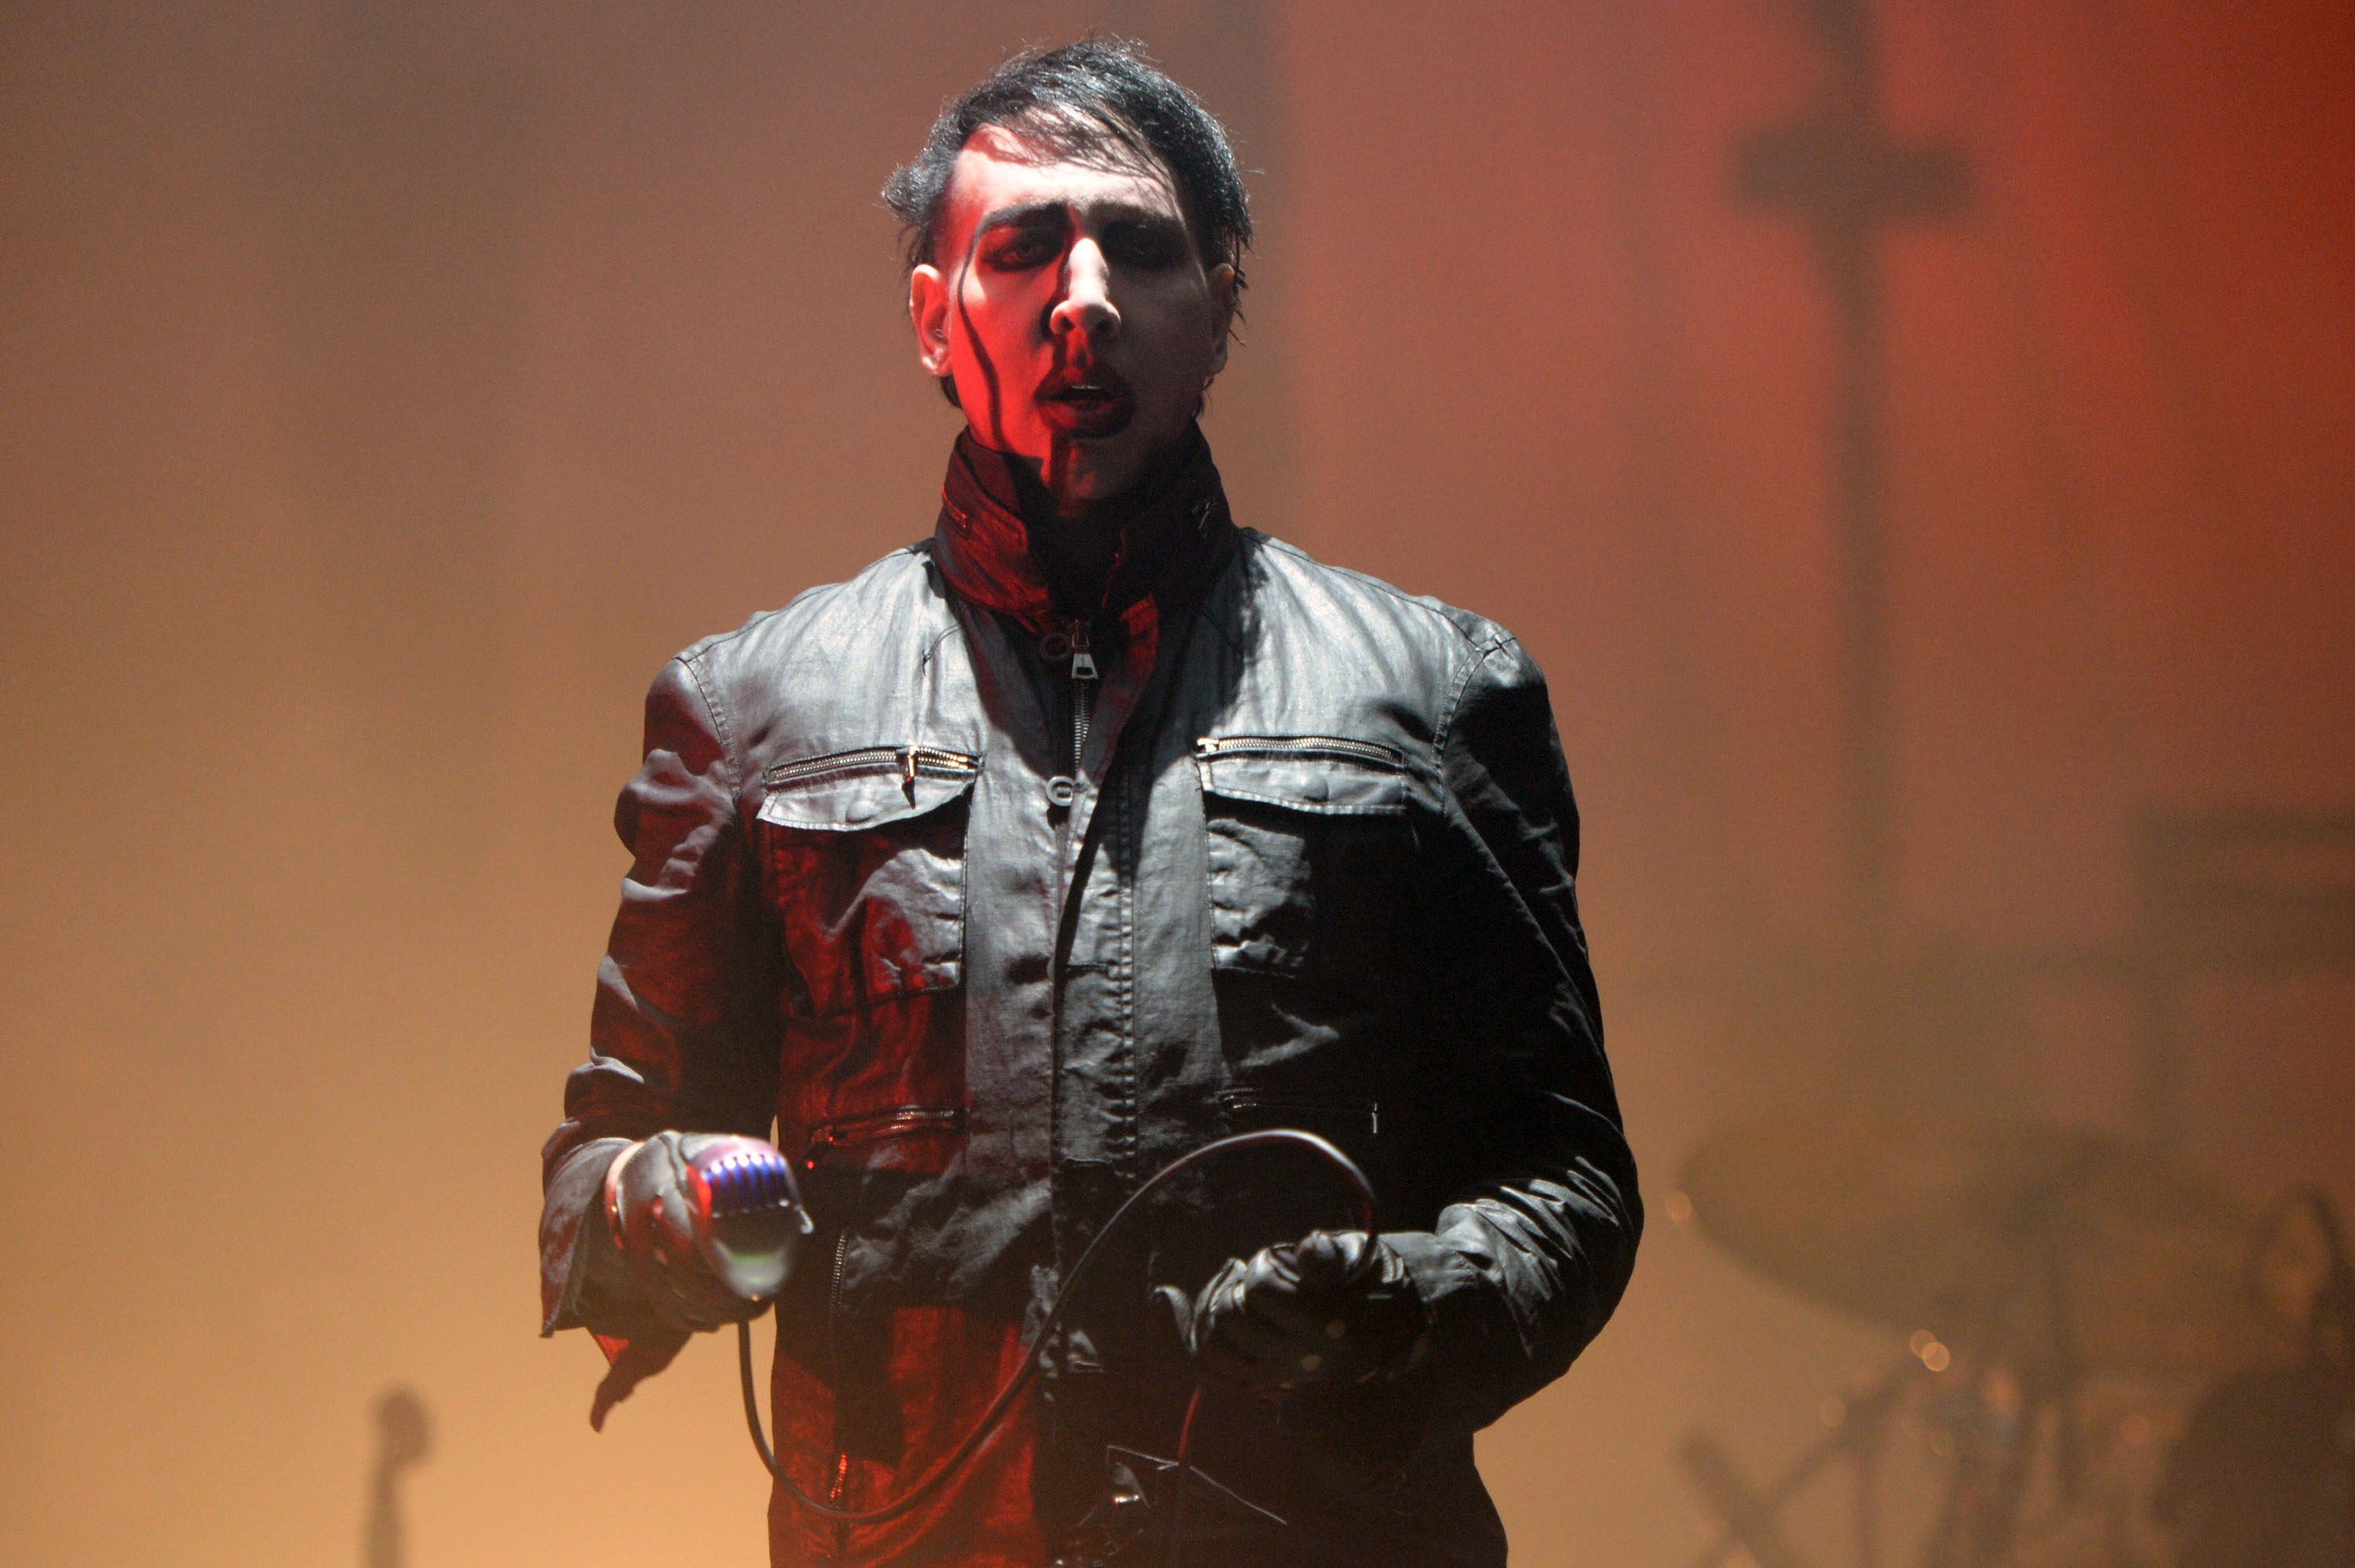 SACRAMENTO, CA - OCTOBER 24:  Singer Marilyn Manson performs onstage at Gibson Ranch County Park on October 24, 2015 in Sacramento, California.  (Photo by Scott Dudelson/Getty Images)